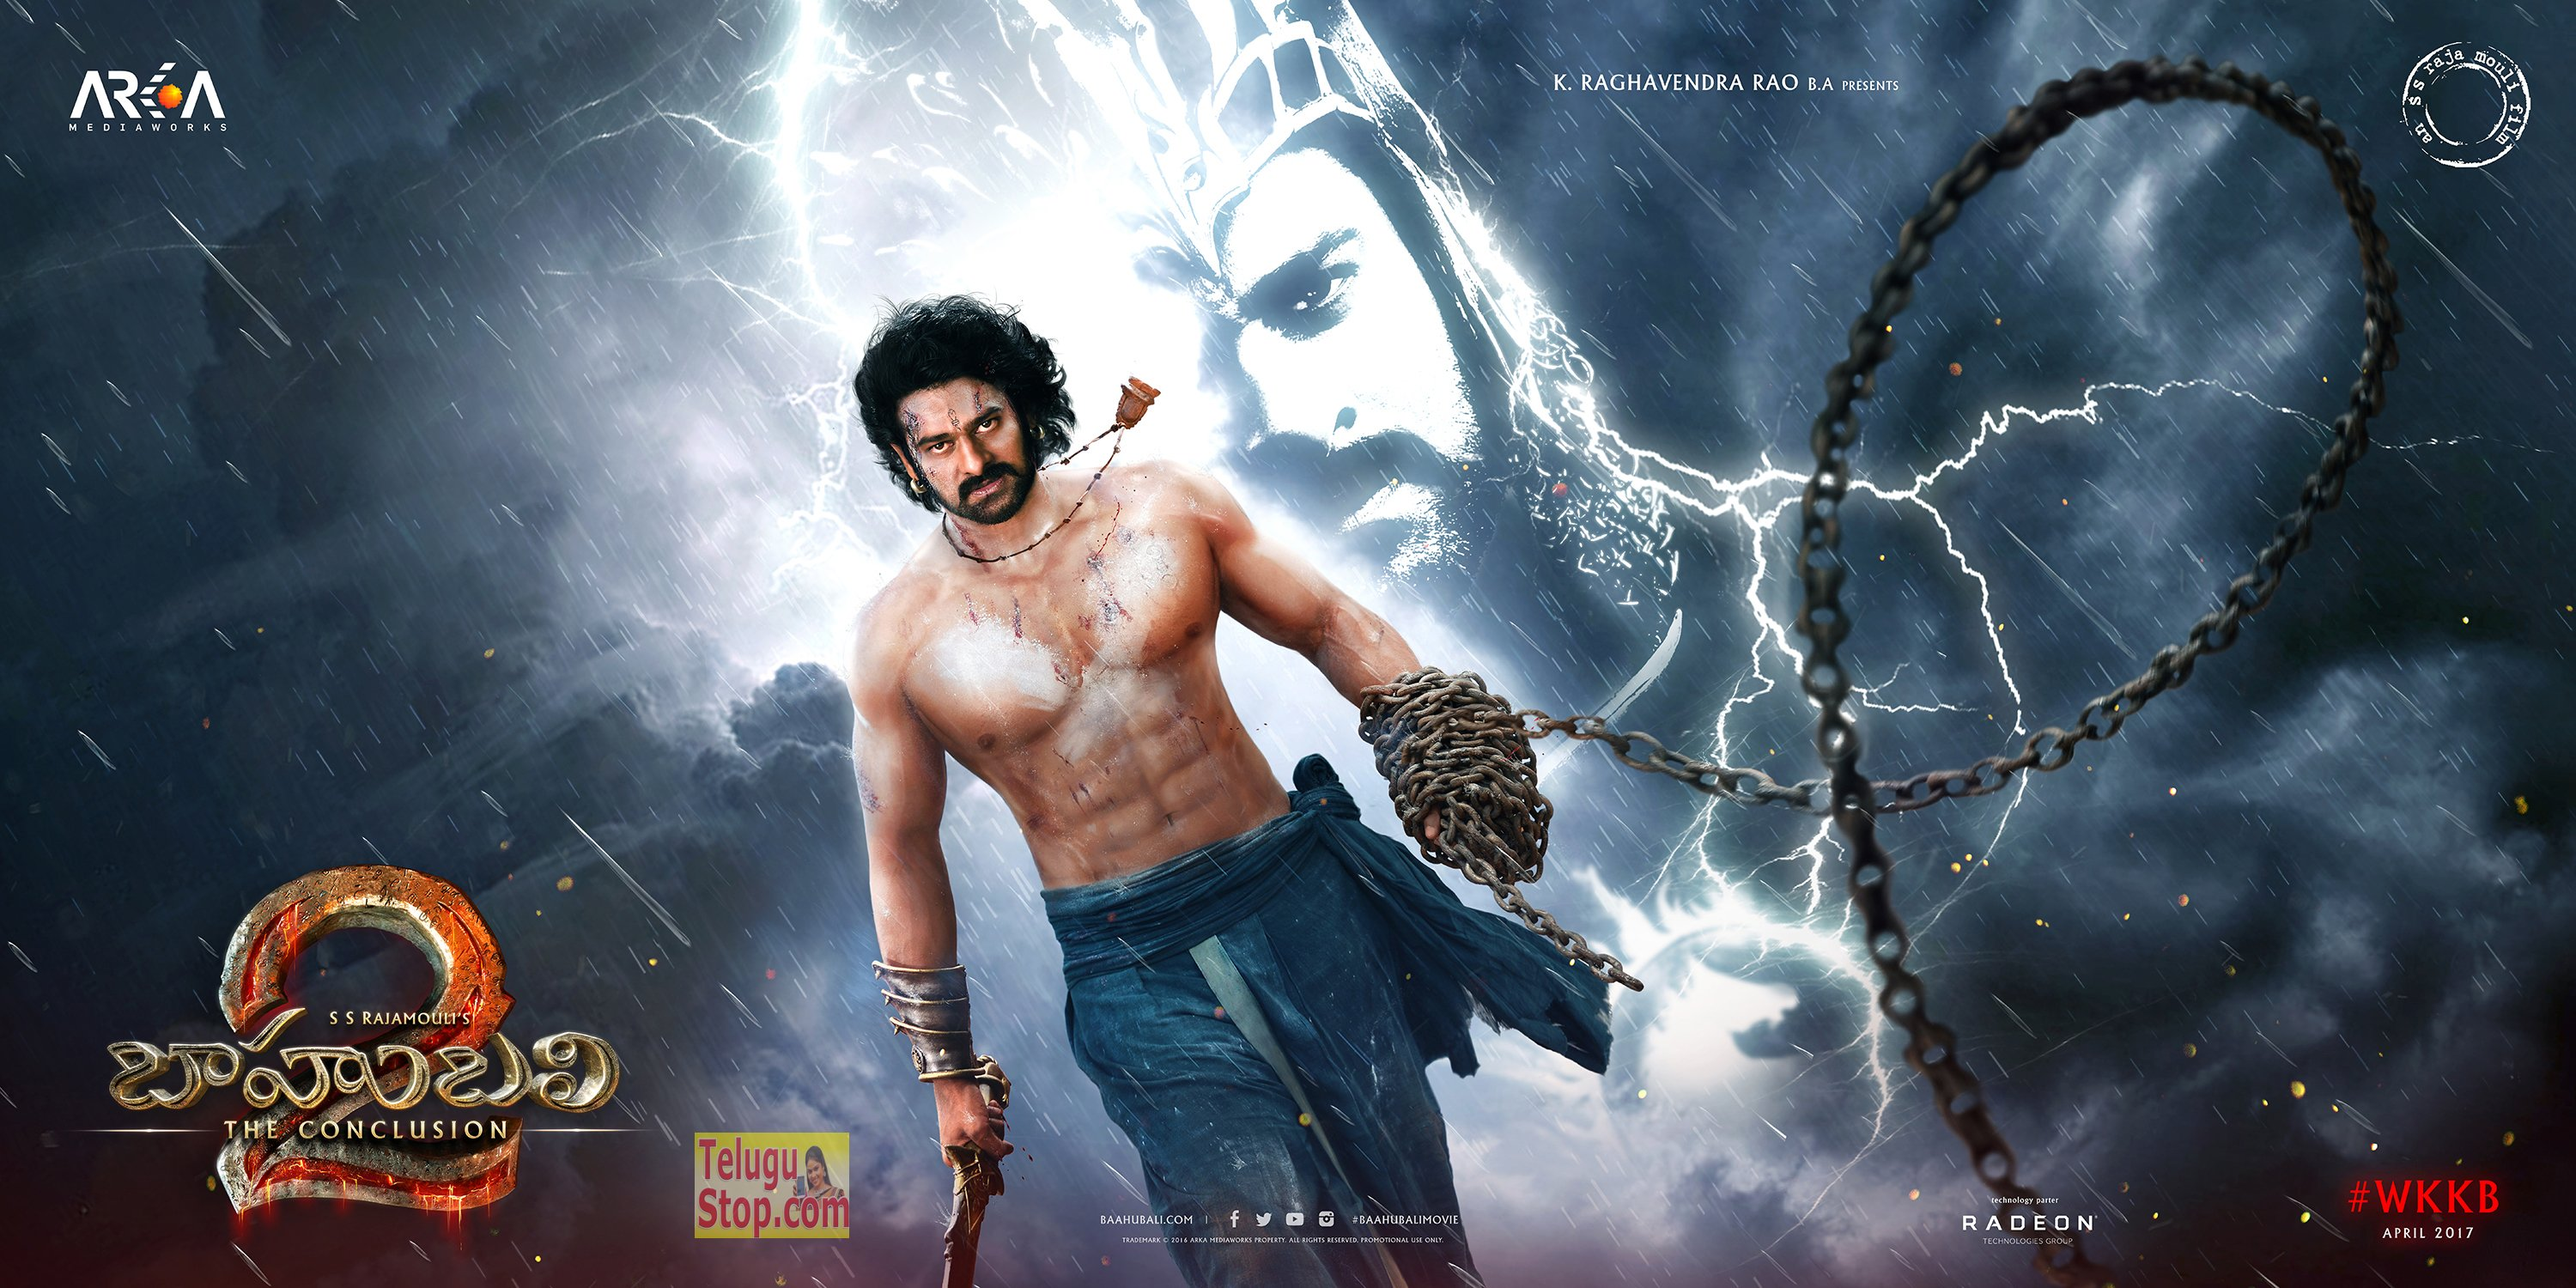 Dubbing Poster Negative Response For Baahubali 2 First Look Prabhas Birthday Rajamouli Photo,Image,Pics-